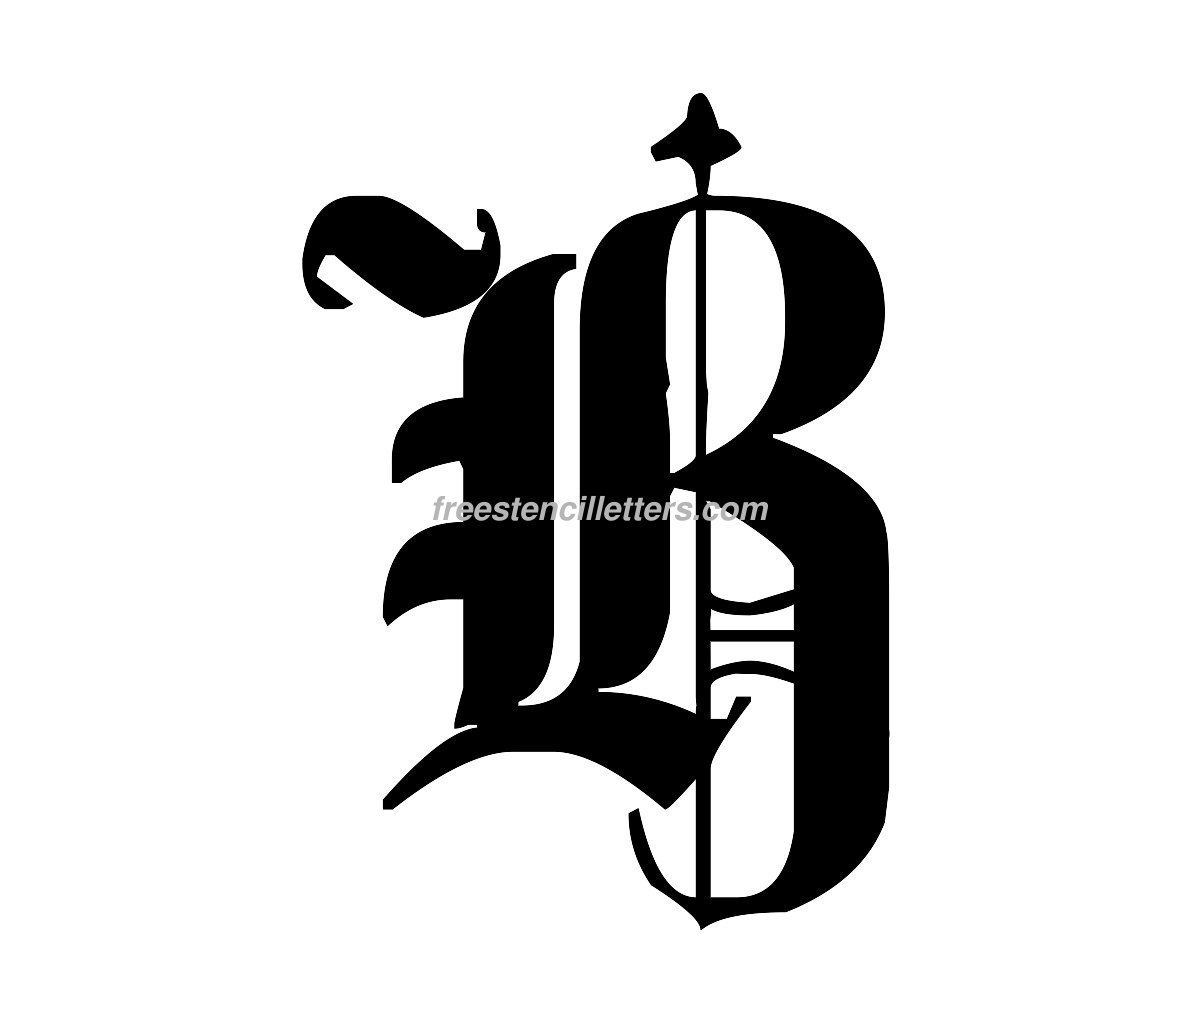 stencil-b  Inch Letter R Template on printable bubble, imperial units, rabbit craft, us customary units, units of measurement, reindeer craft, international system of units, arts crafts, english units, unit of length, for shirts,